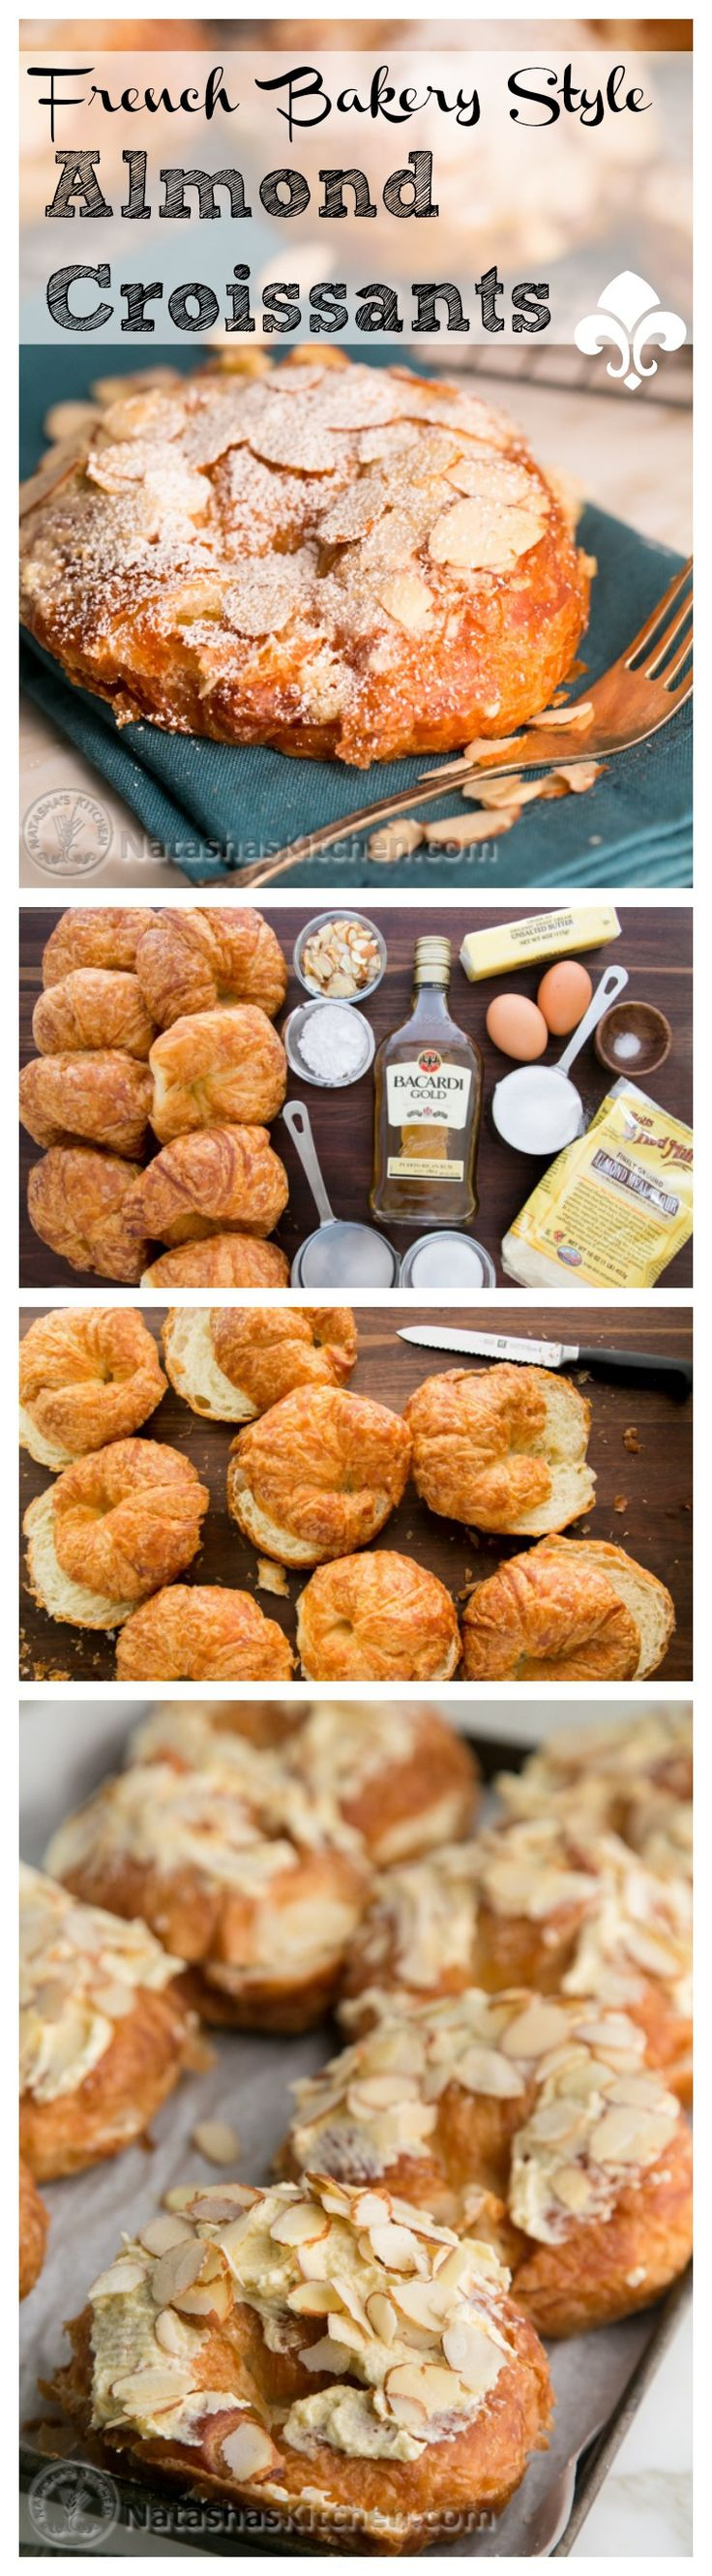 A fantastic way to use up day-old croissants. Copycat French bakery recipe. You WILL WOW your breakfasts guests!!